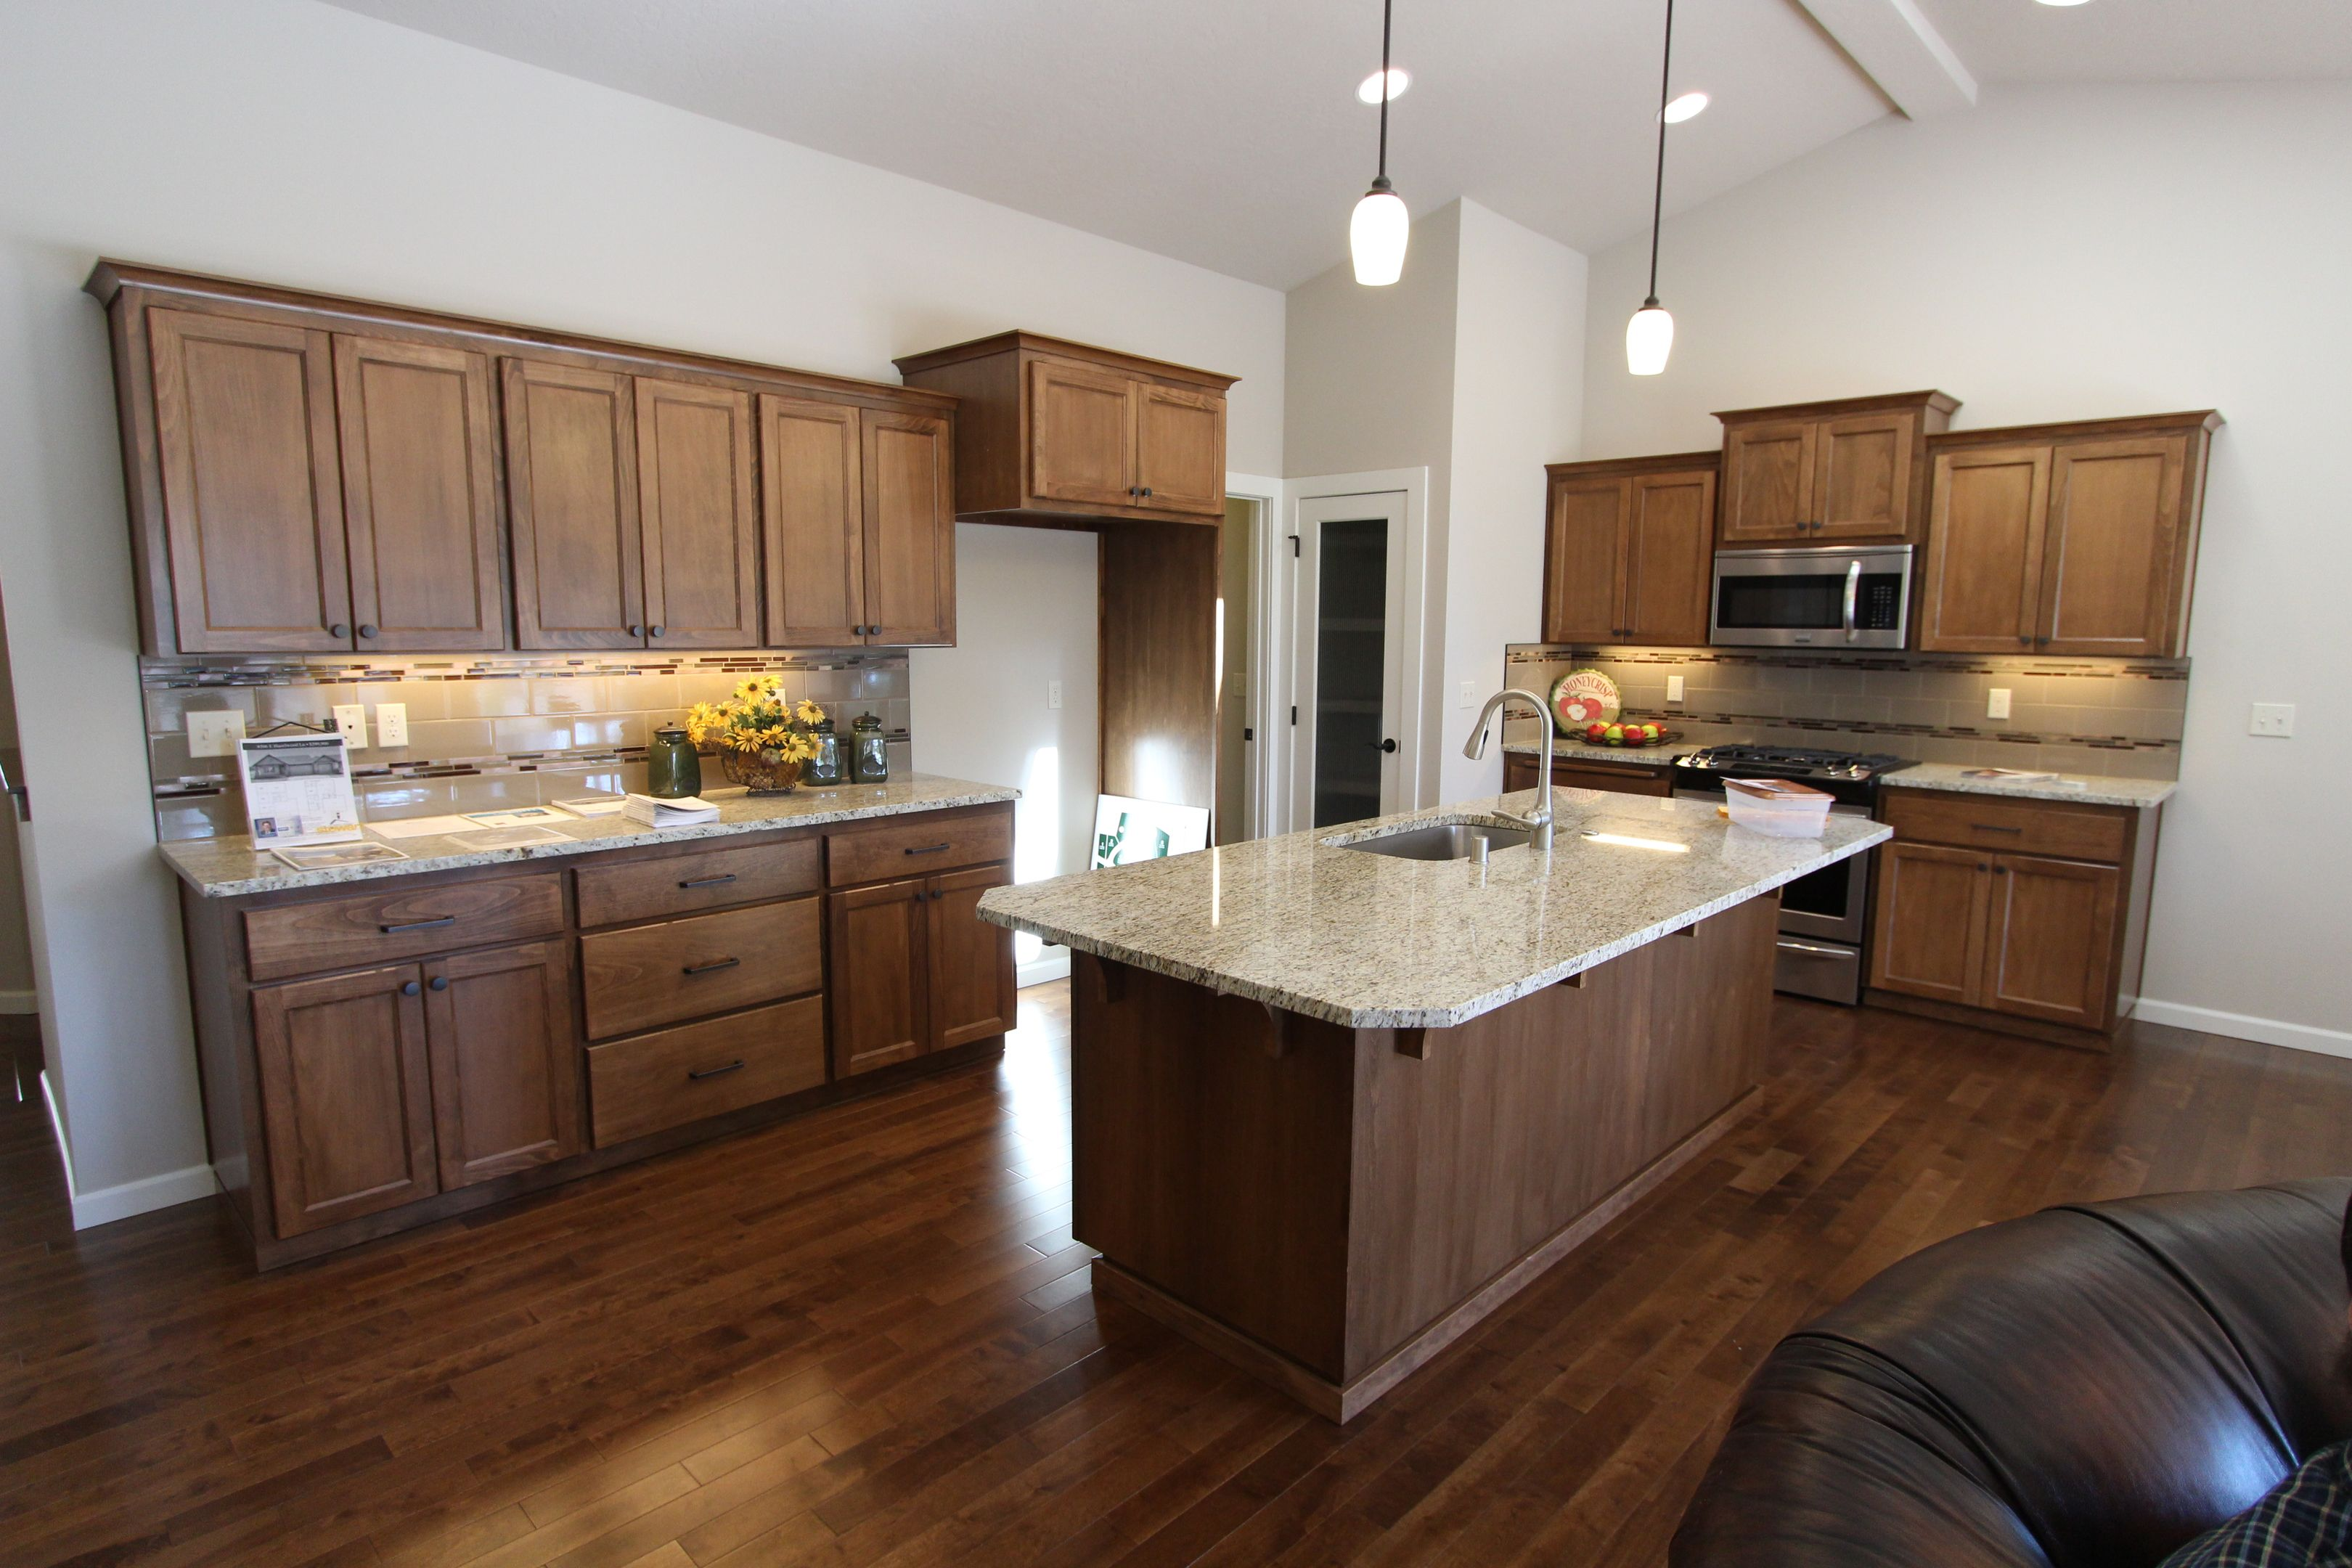 Best Affordable Custom Cabinets Showroom Kitchens Without 400 x 300